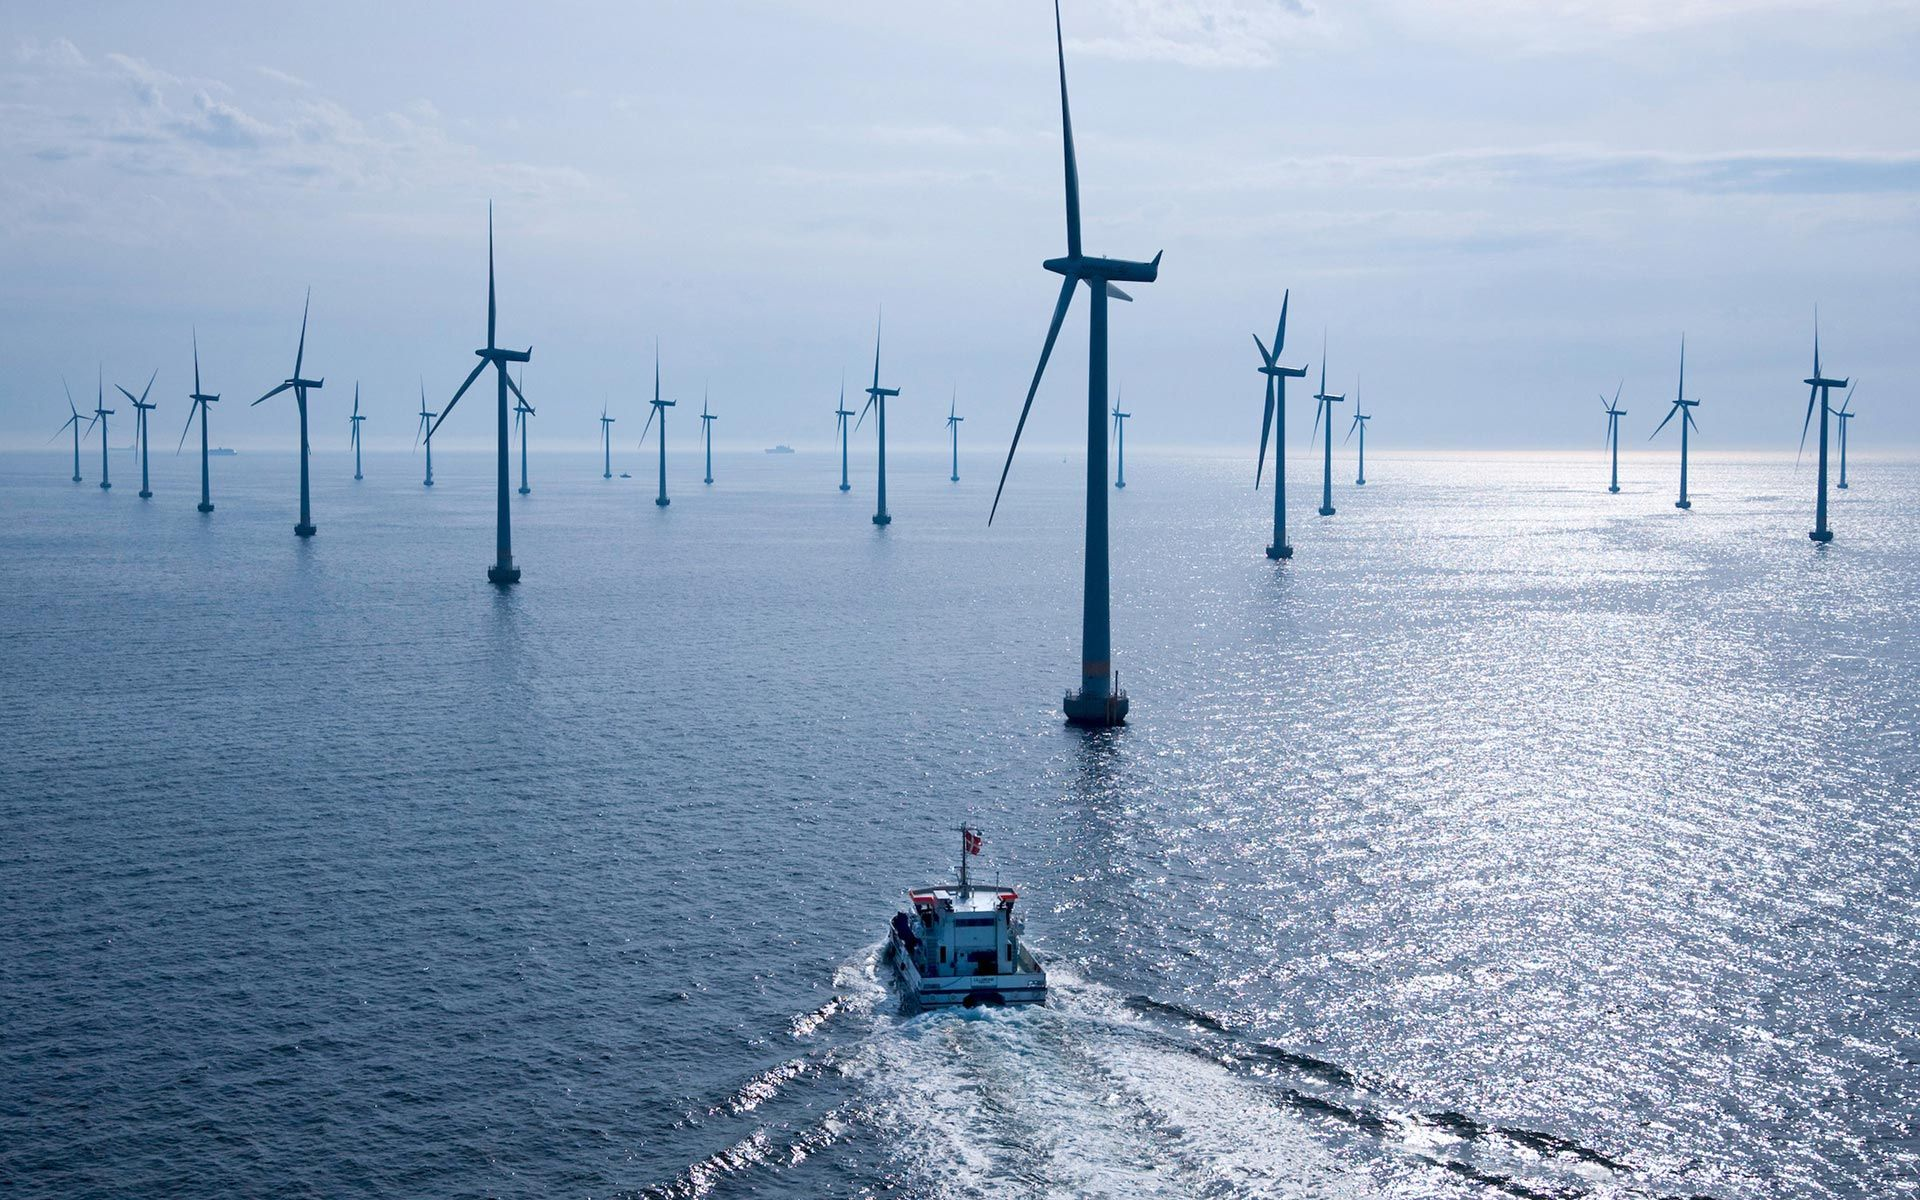 Windmill Wallpaper Backgrounds Boat Windmills Desktop Wallpapers And Backgrounds Offshore Wind Farms Wind Farm Offshore Wind Turbines